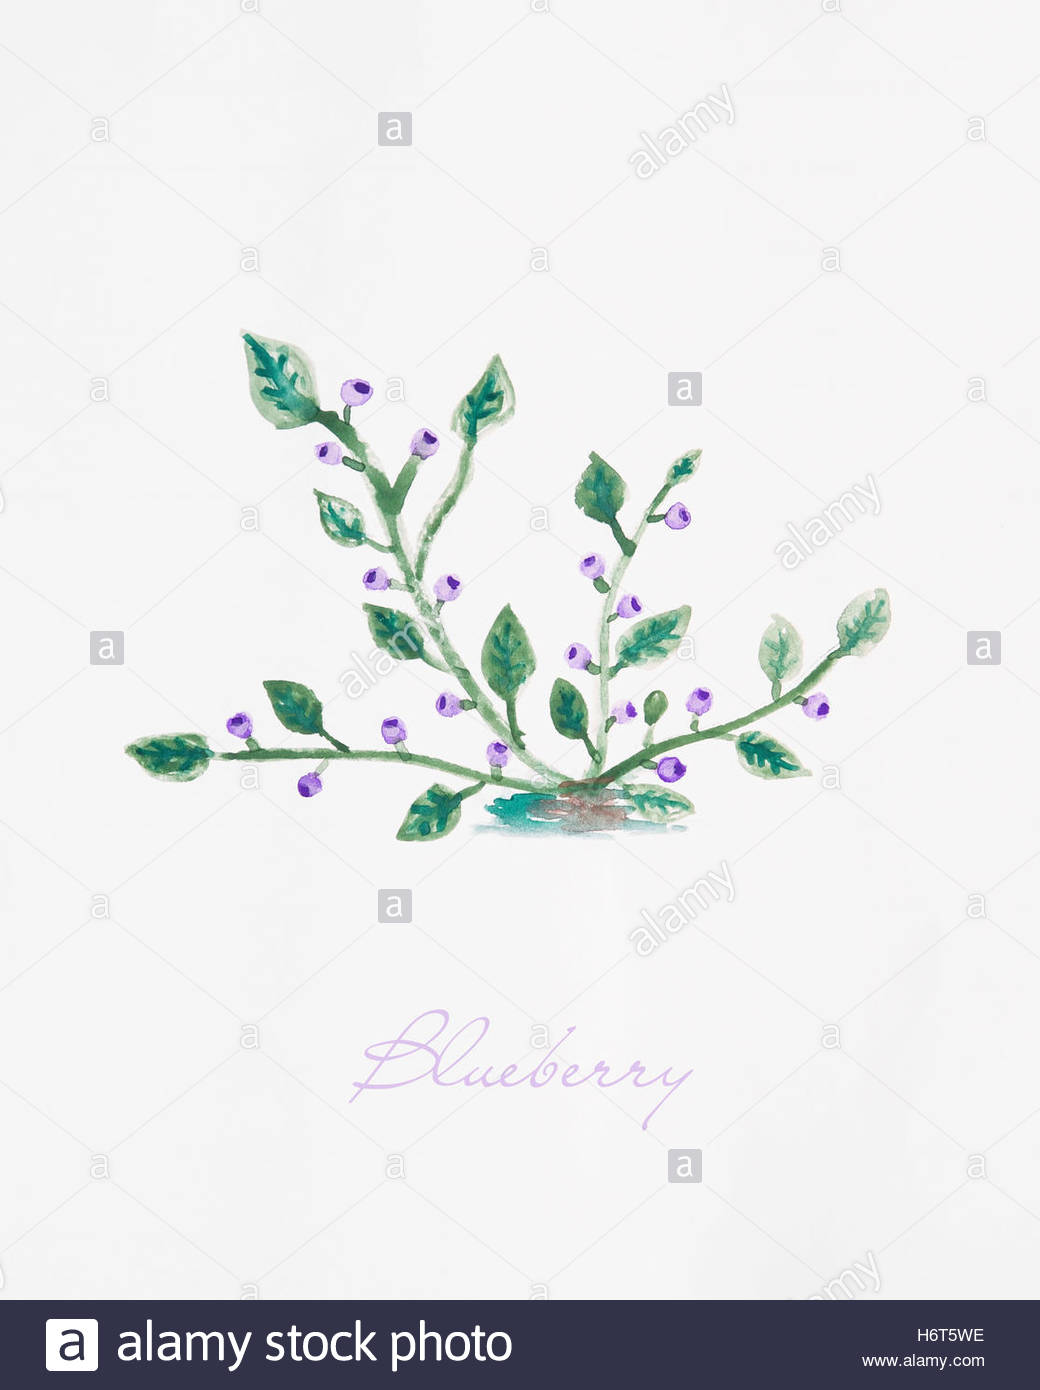 1040x1390 Blueberry Bush With Blueberry Fruits Watercolor Drawing